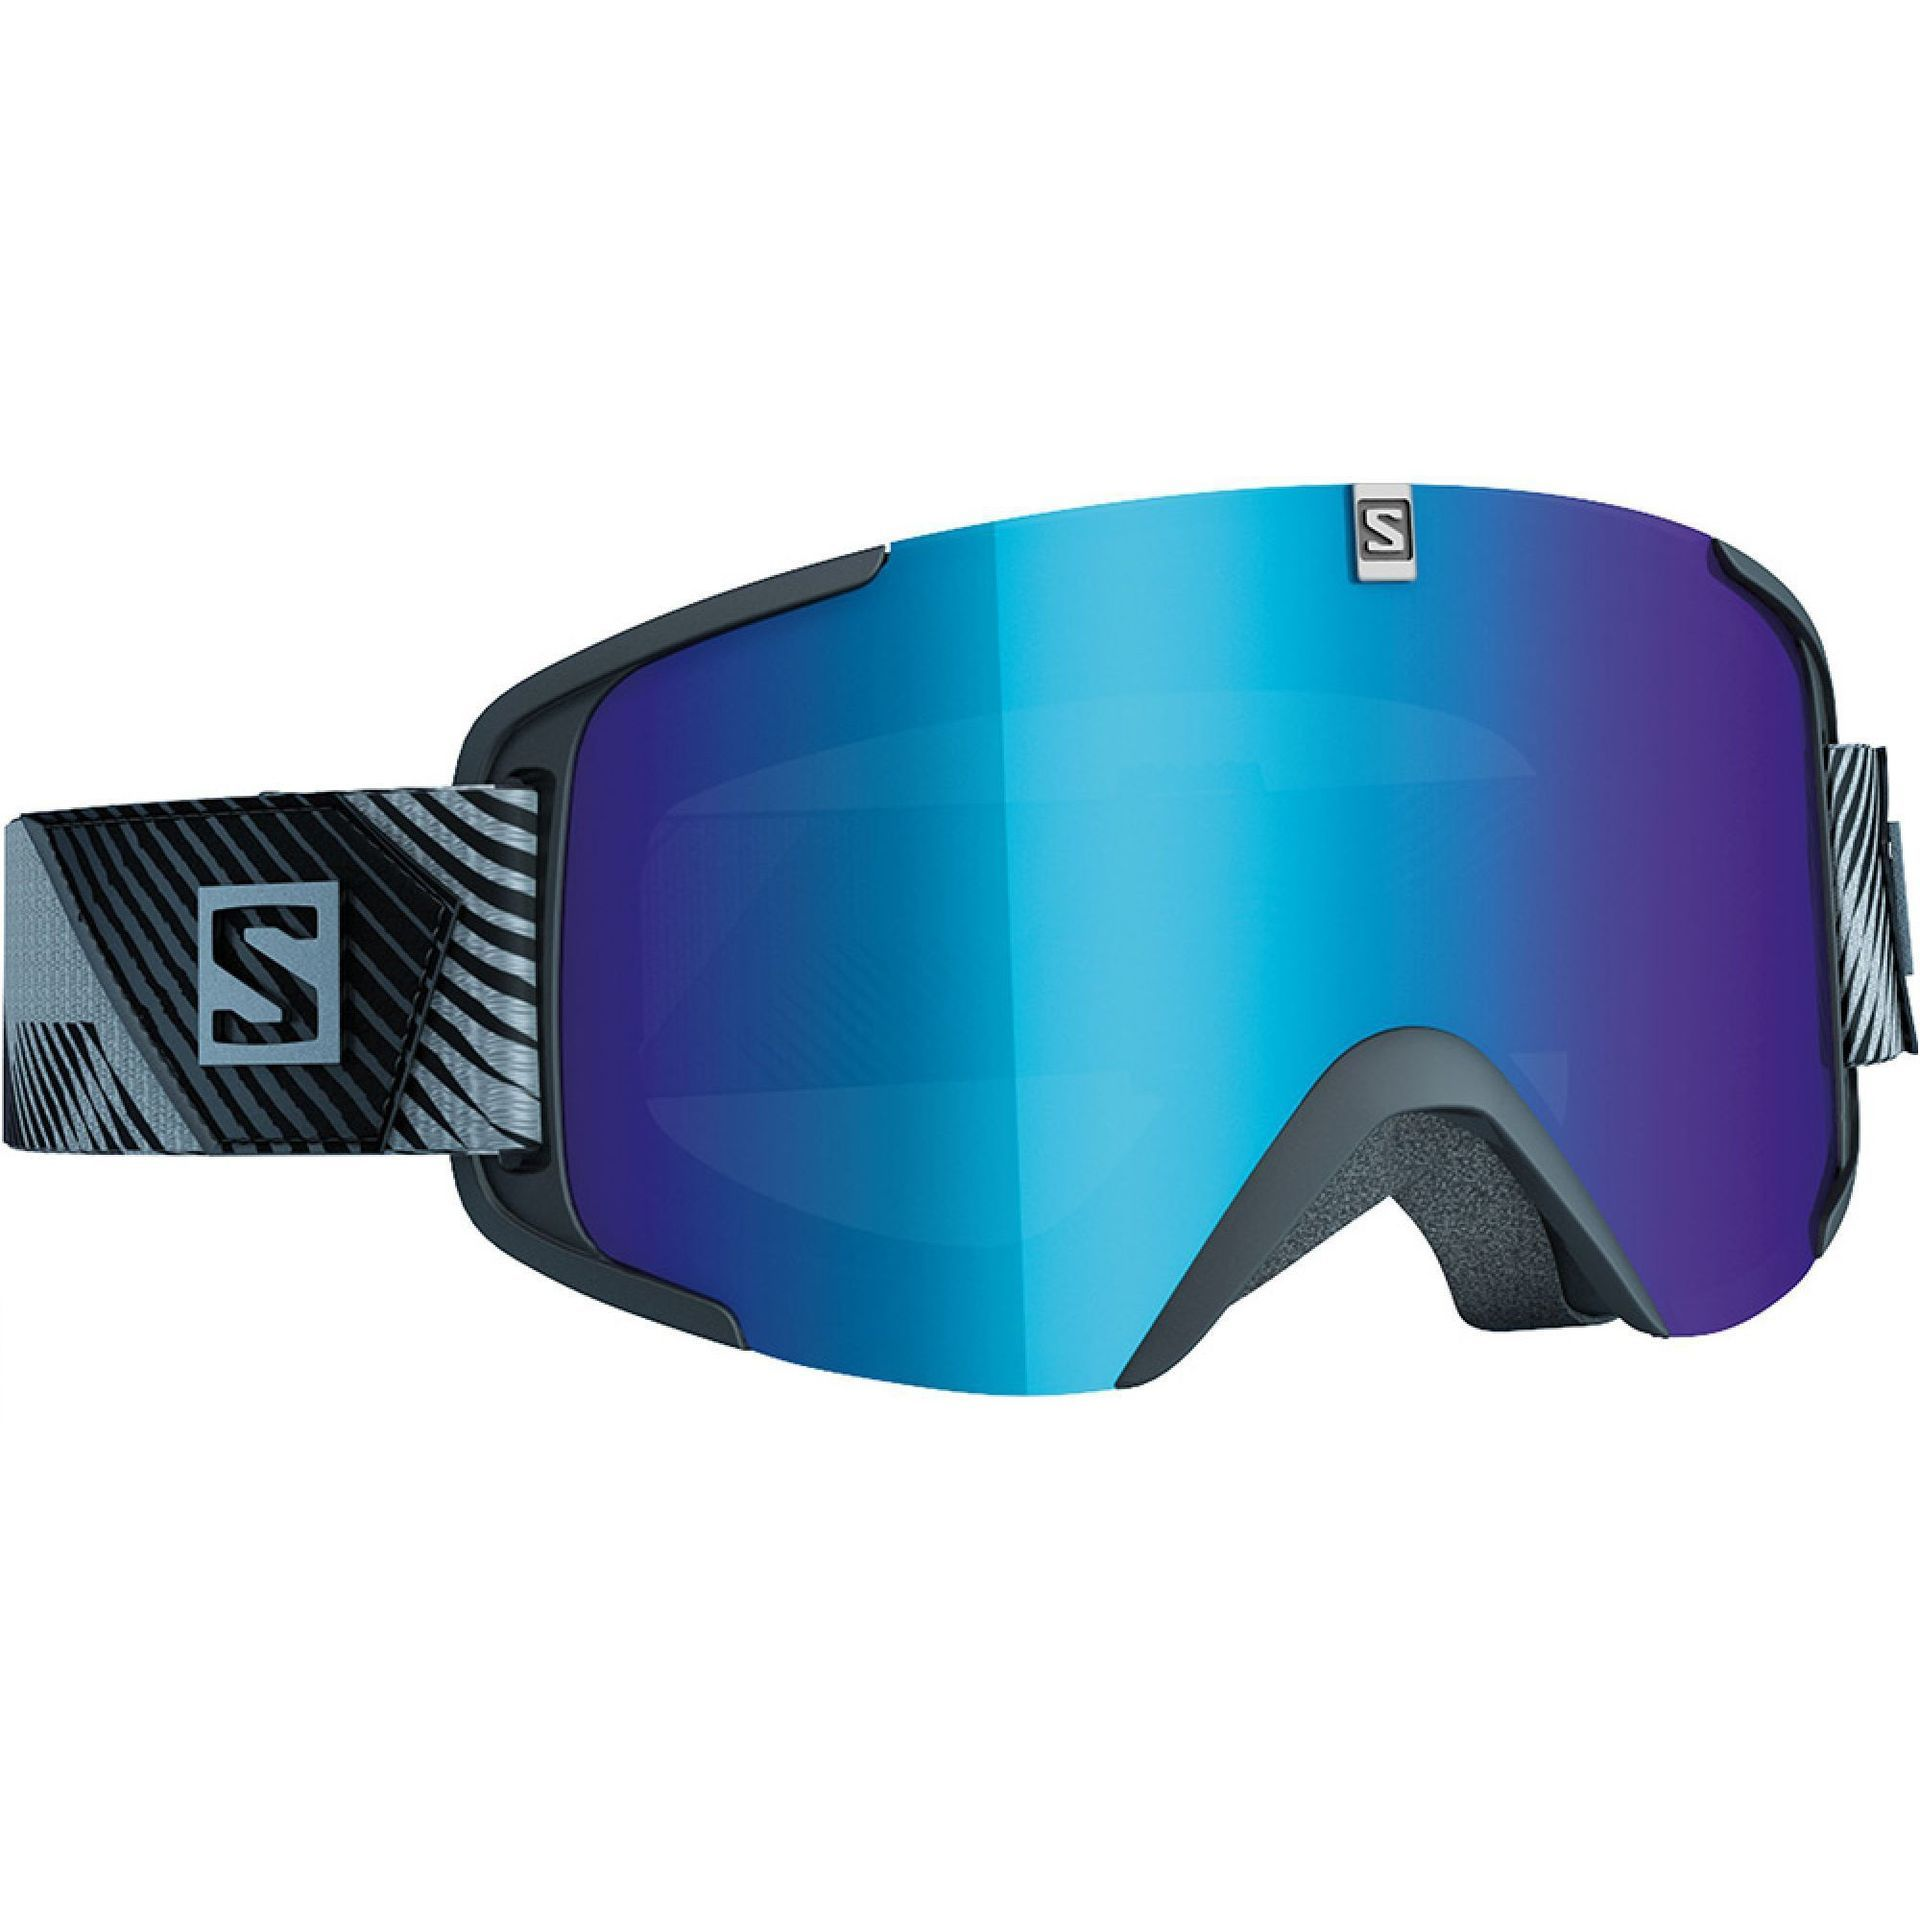 GOGLE SALOMON XVIEW EXTRA BLACK|SOLAR BLUE 2